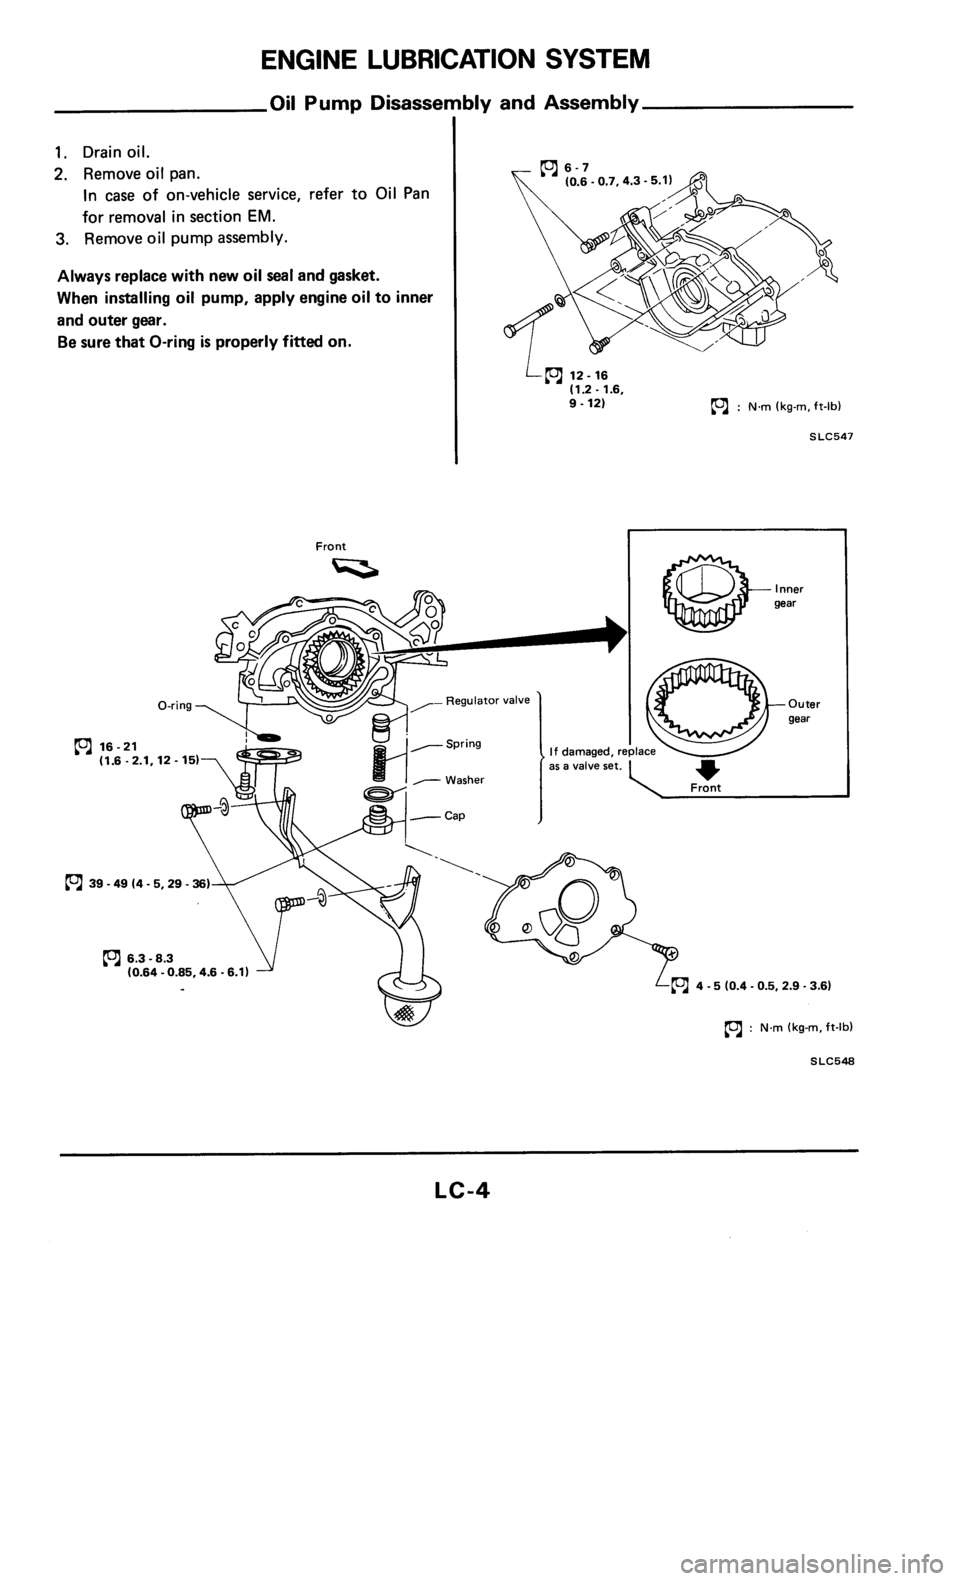 Nissan 300zx 1985 Z31 Engine Lubrication And Cooling System Workshop 3 8 Diagram Manual